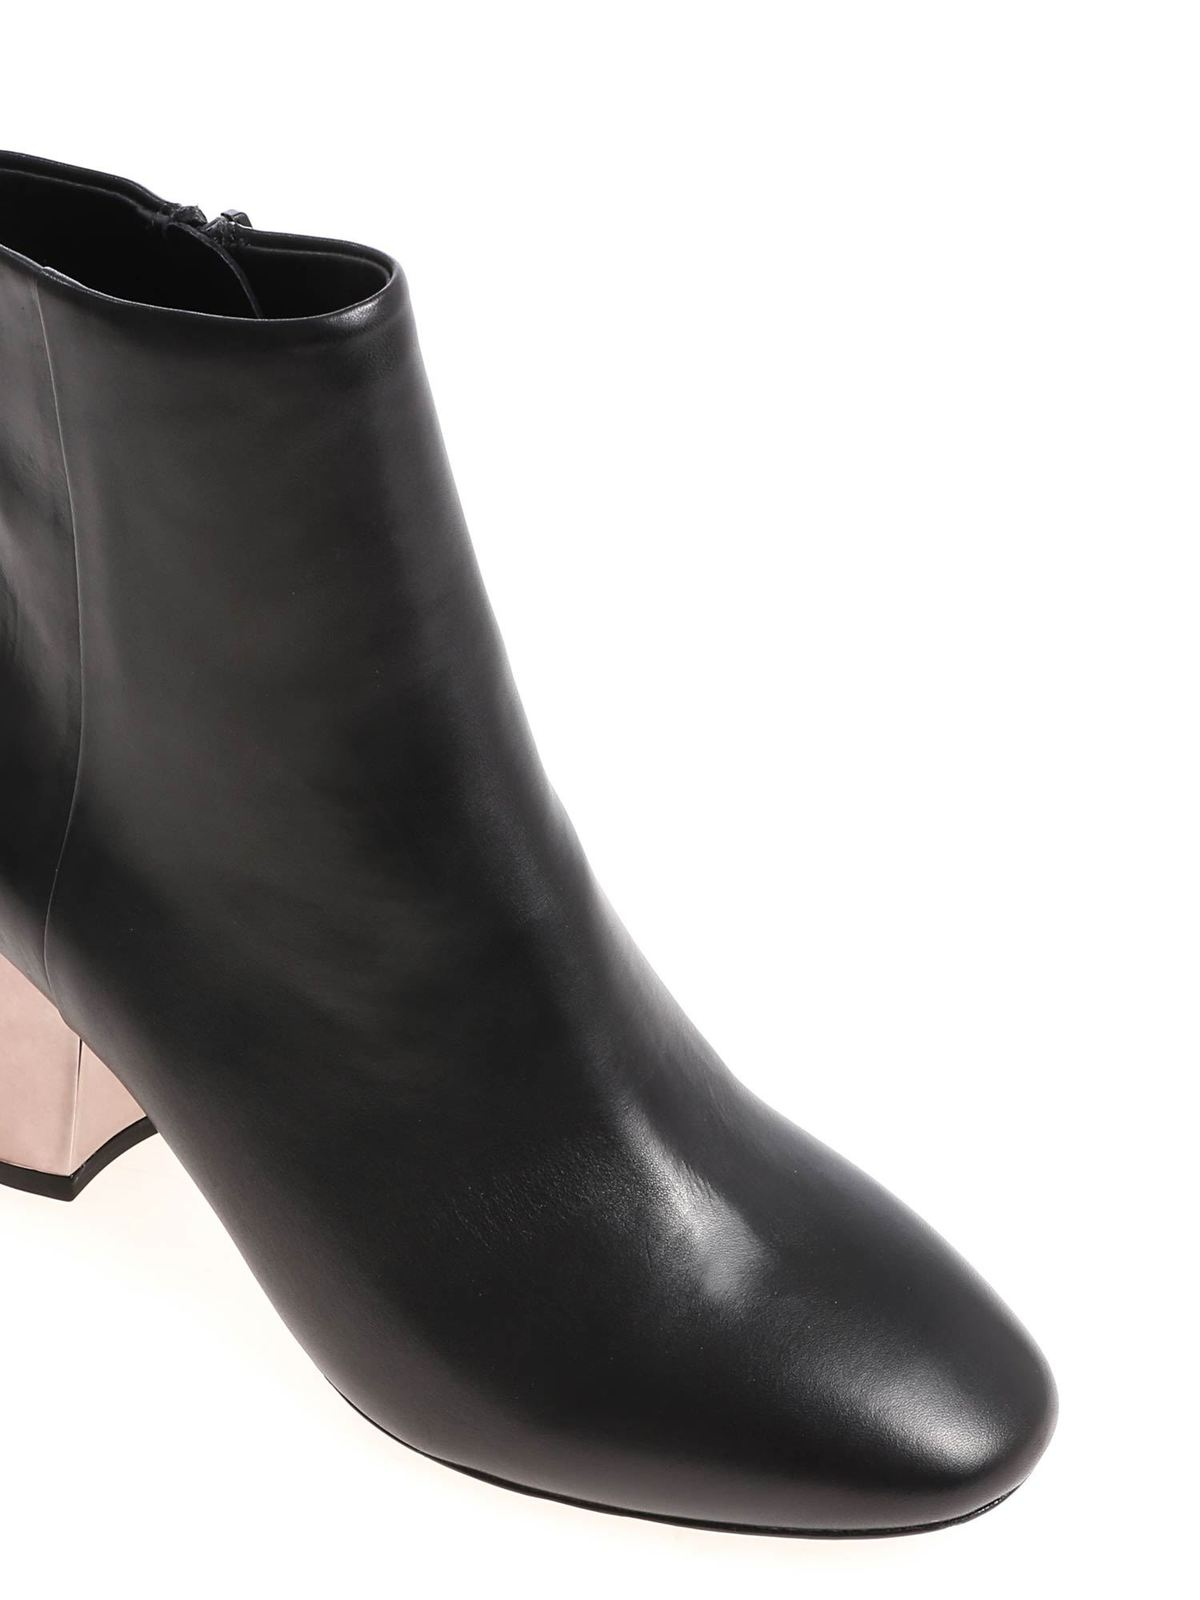 Harlem ankle boots with silver heel